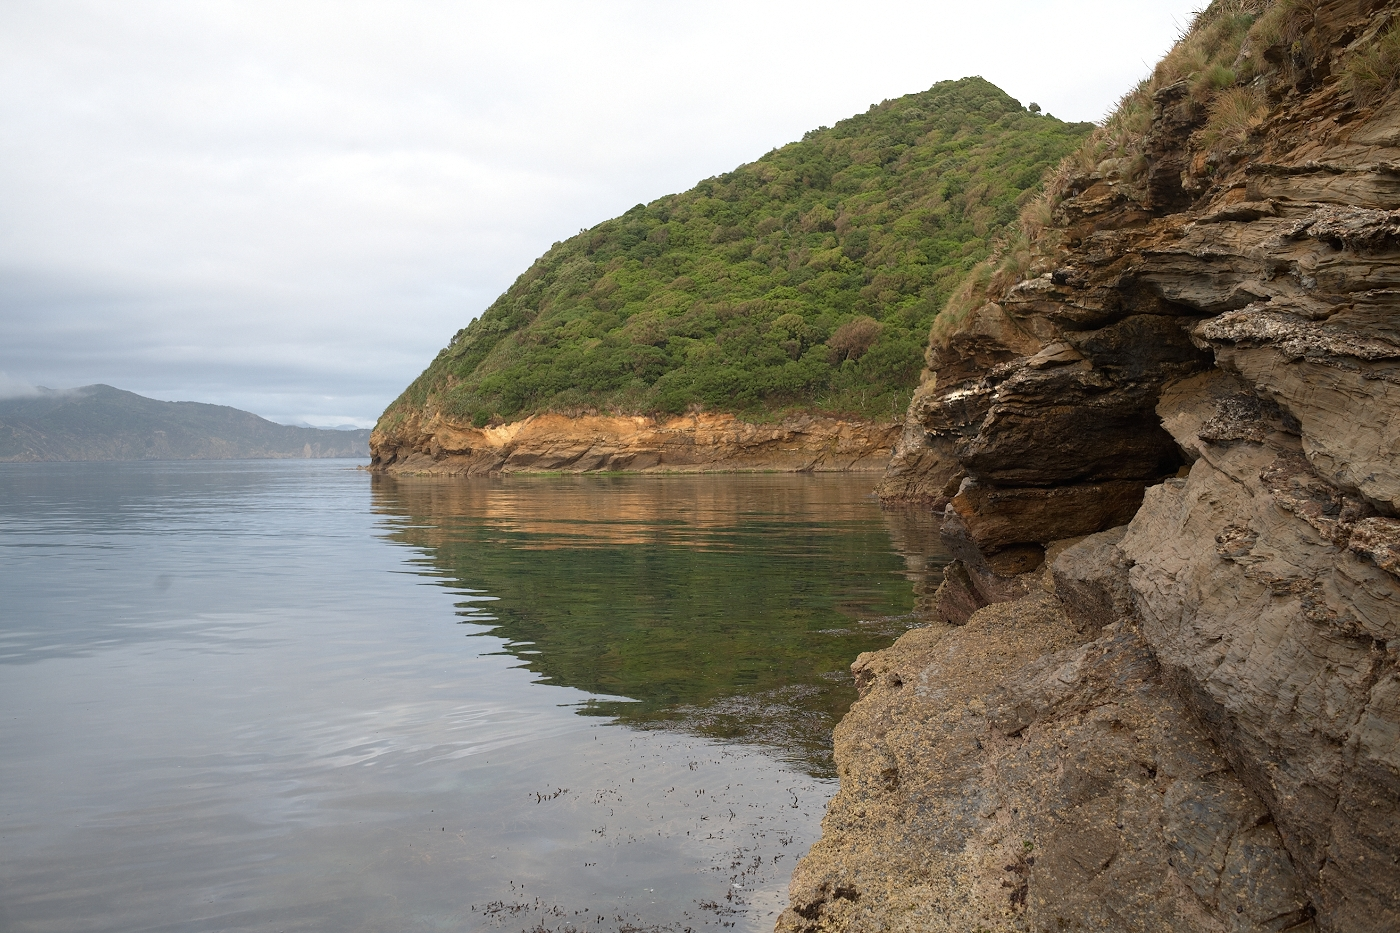 Coastline view of Titi Island, Marlborough where Te Papa carried out shearwater research. Photograph by Jean-Claude Stahl. © Te Papa